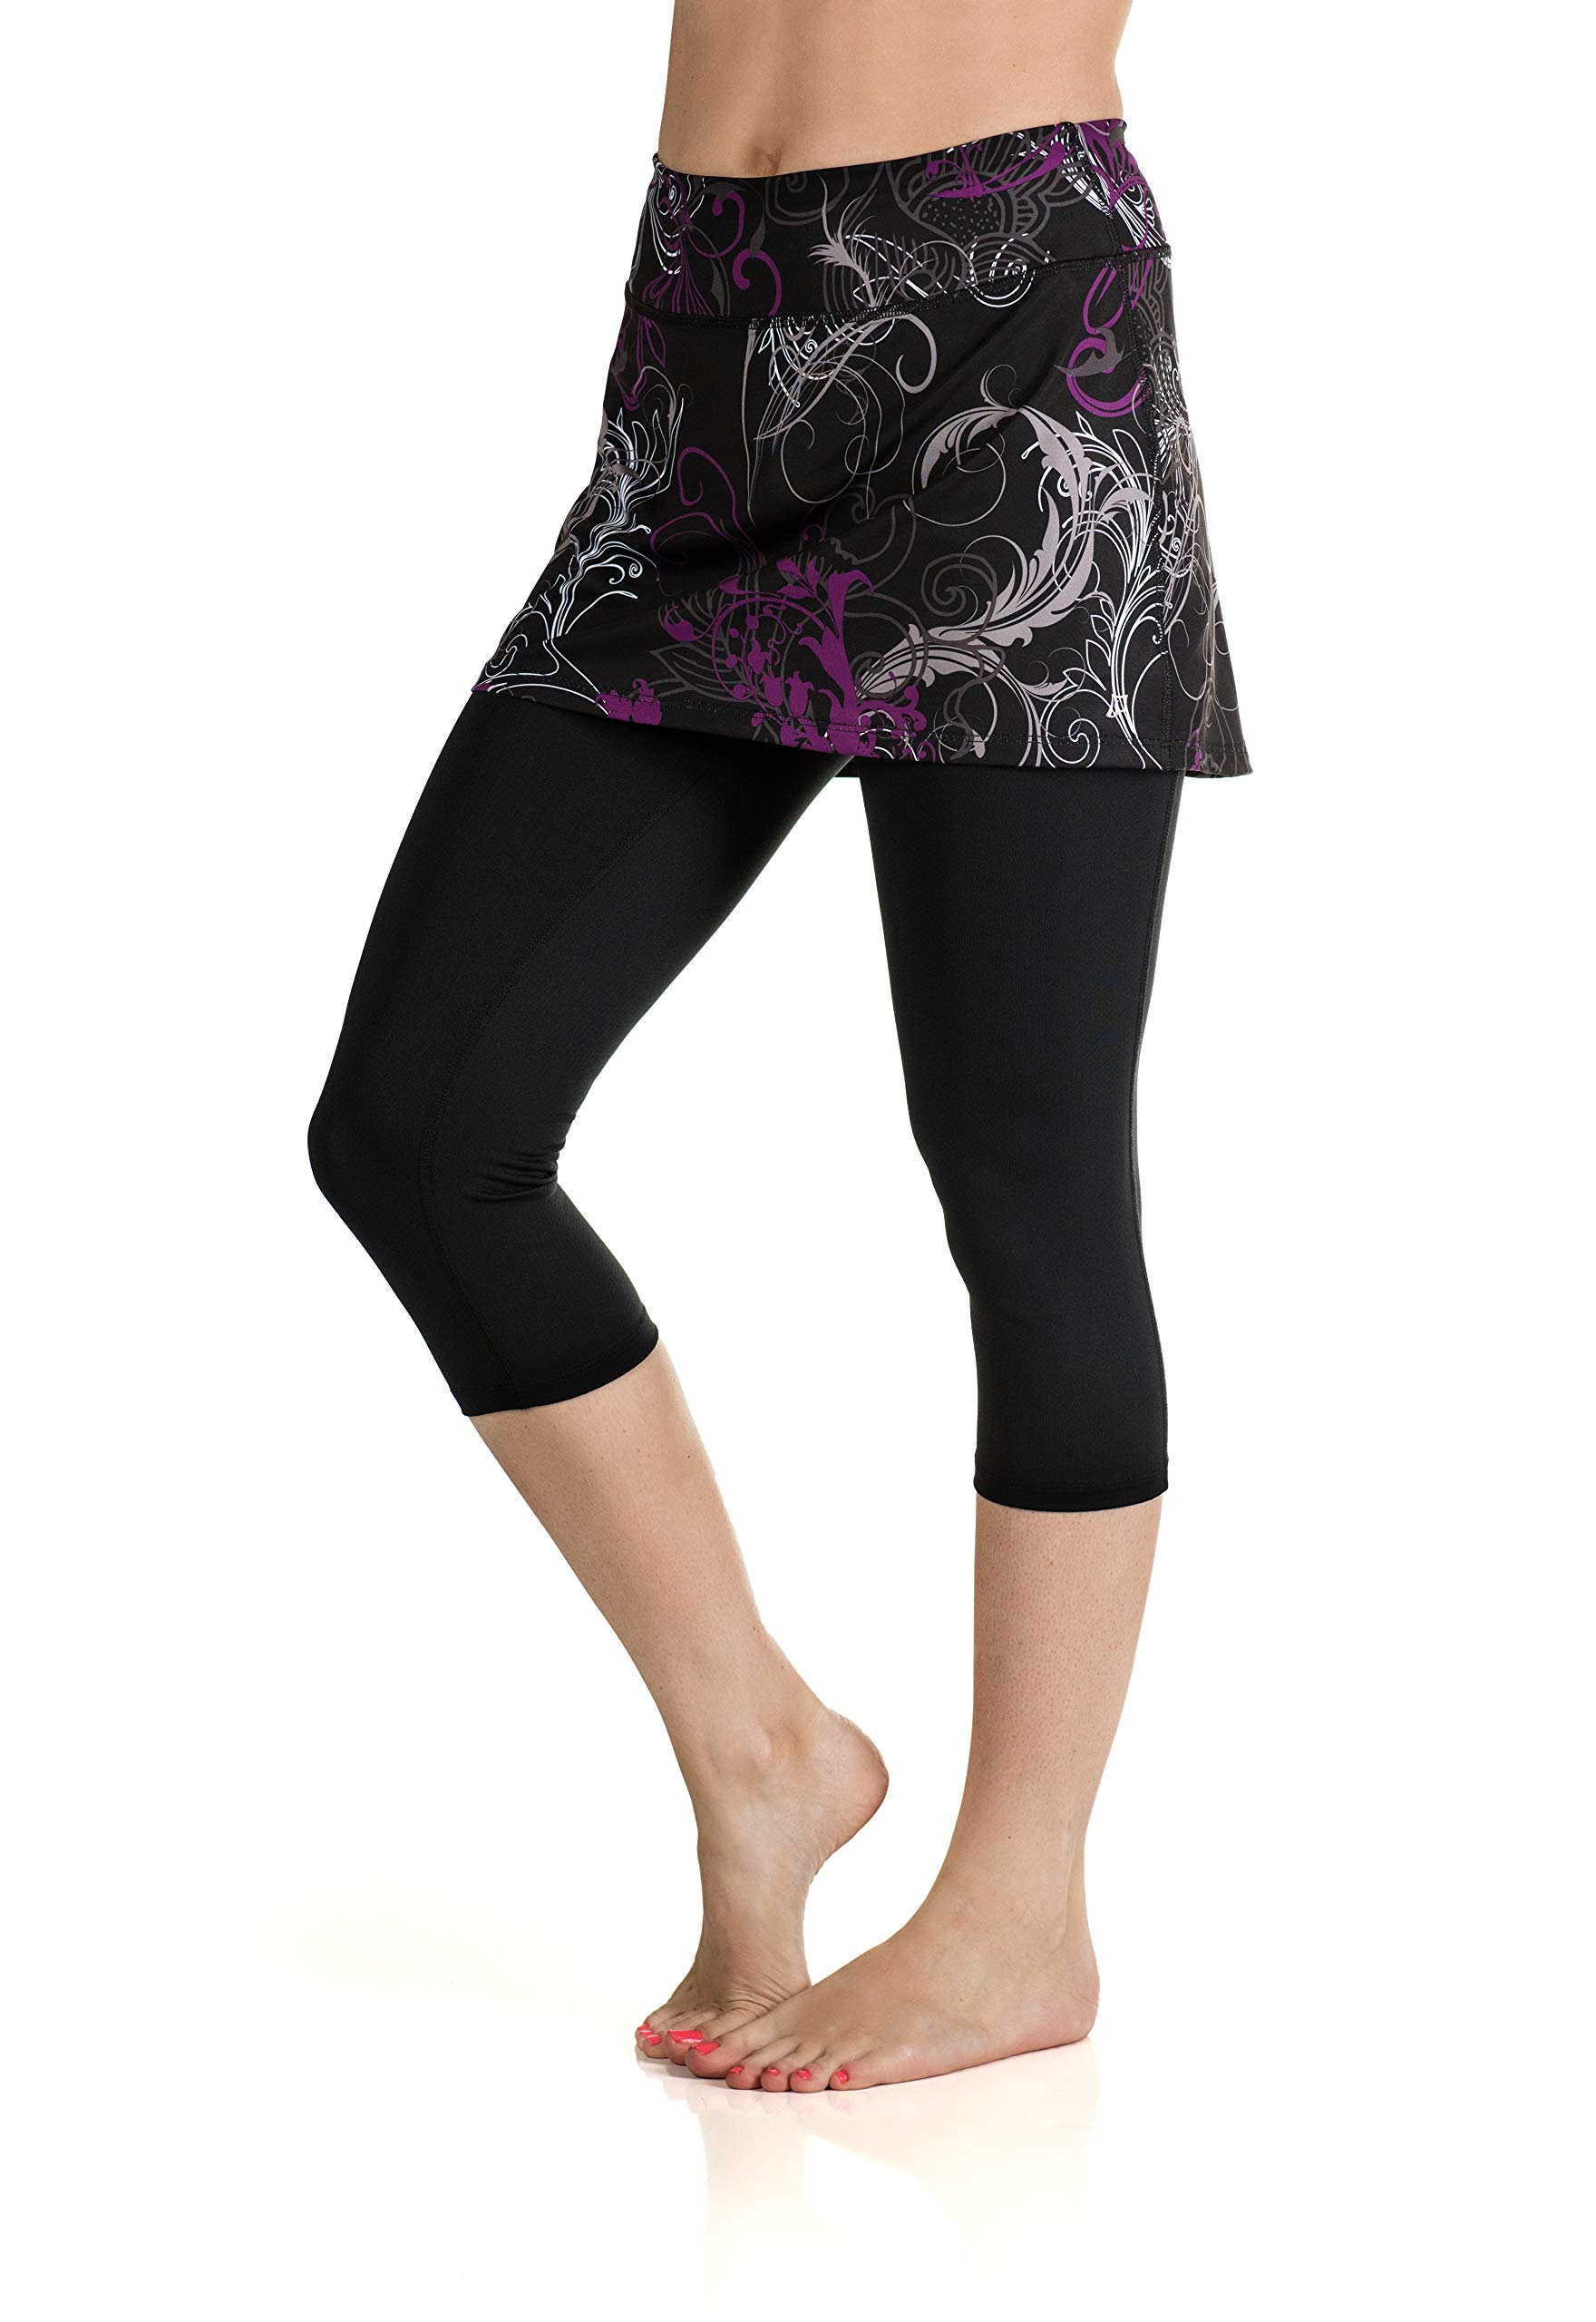 Skirt Sports Women's Lotta Breeze Capri Skirt, Starlet Print/Black, Large by Skirt Sports